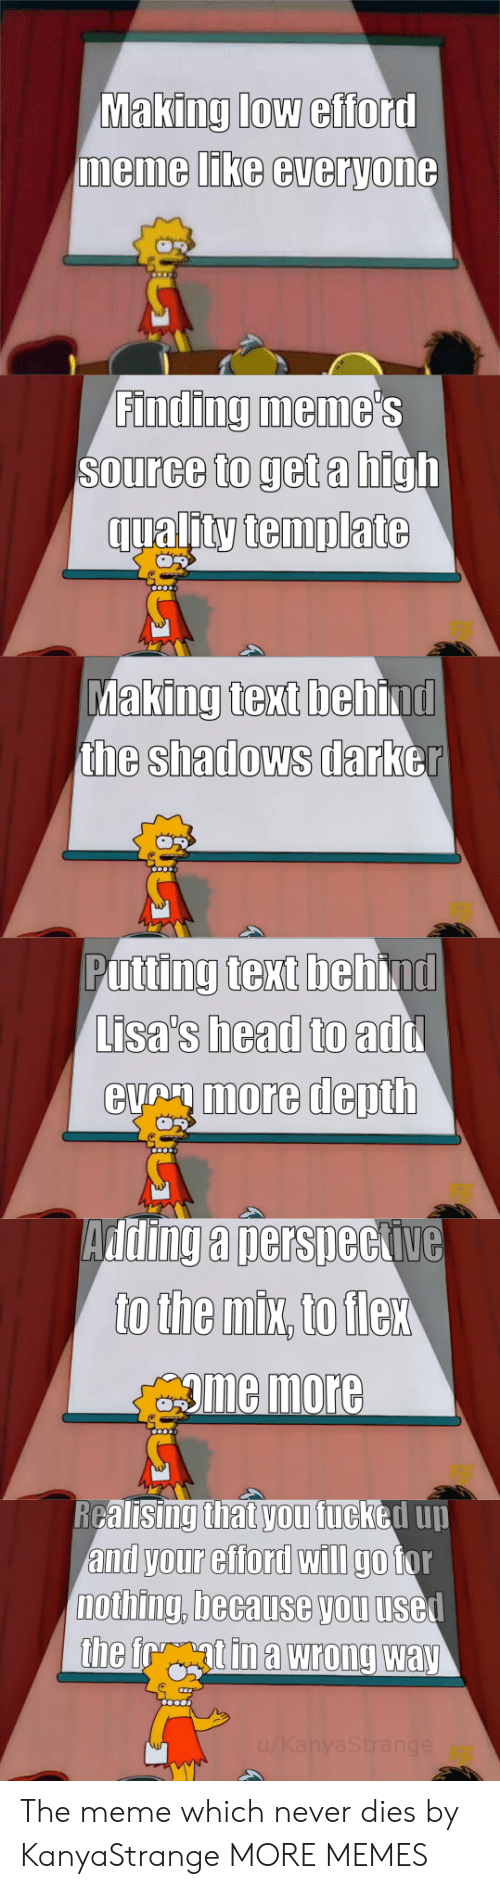 Dank, Head, and Meme: Making low efford  memme LIKe everyone  Finding meme  Source to get a high  qualitytemplate  king text beh  the shadows darb  Ma  ind  er  Putting text behind  Lisa's head to  eumore depth  add  Adding a nersneckive  gme more  RGalisingthat vou fucked uu  and your efford wIlI go tor  nothing, because you usel The meme which never dies by KanyaStrange MORE MEMES